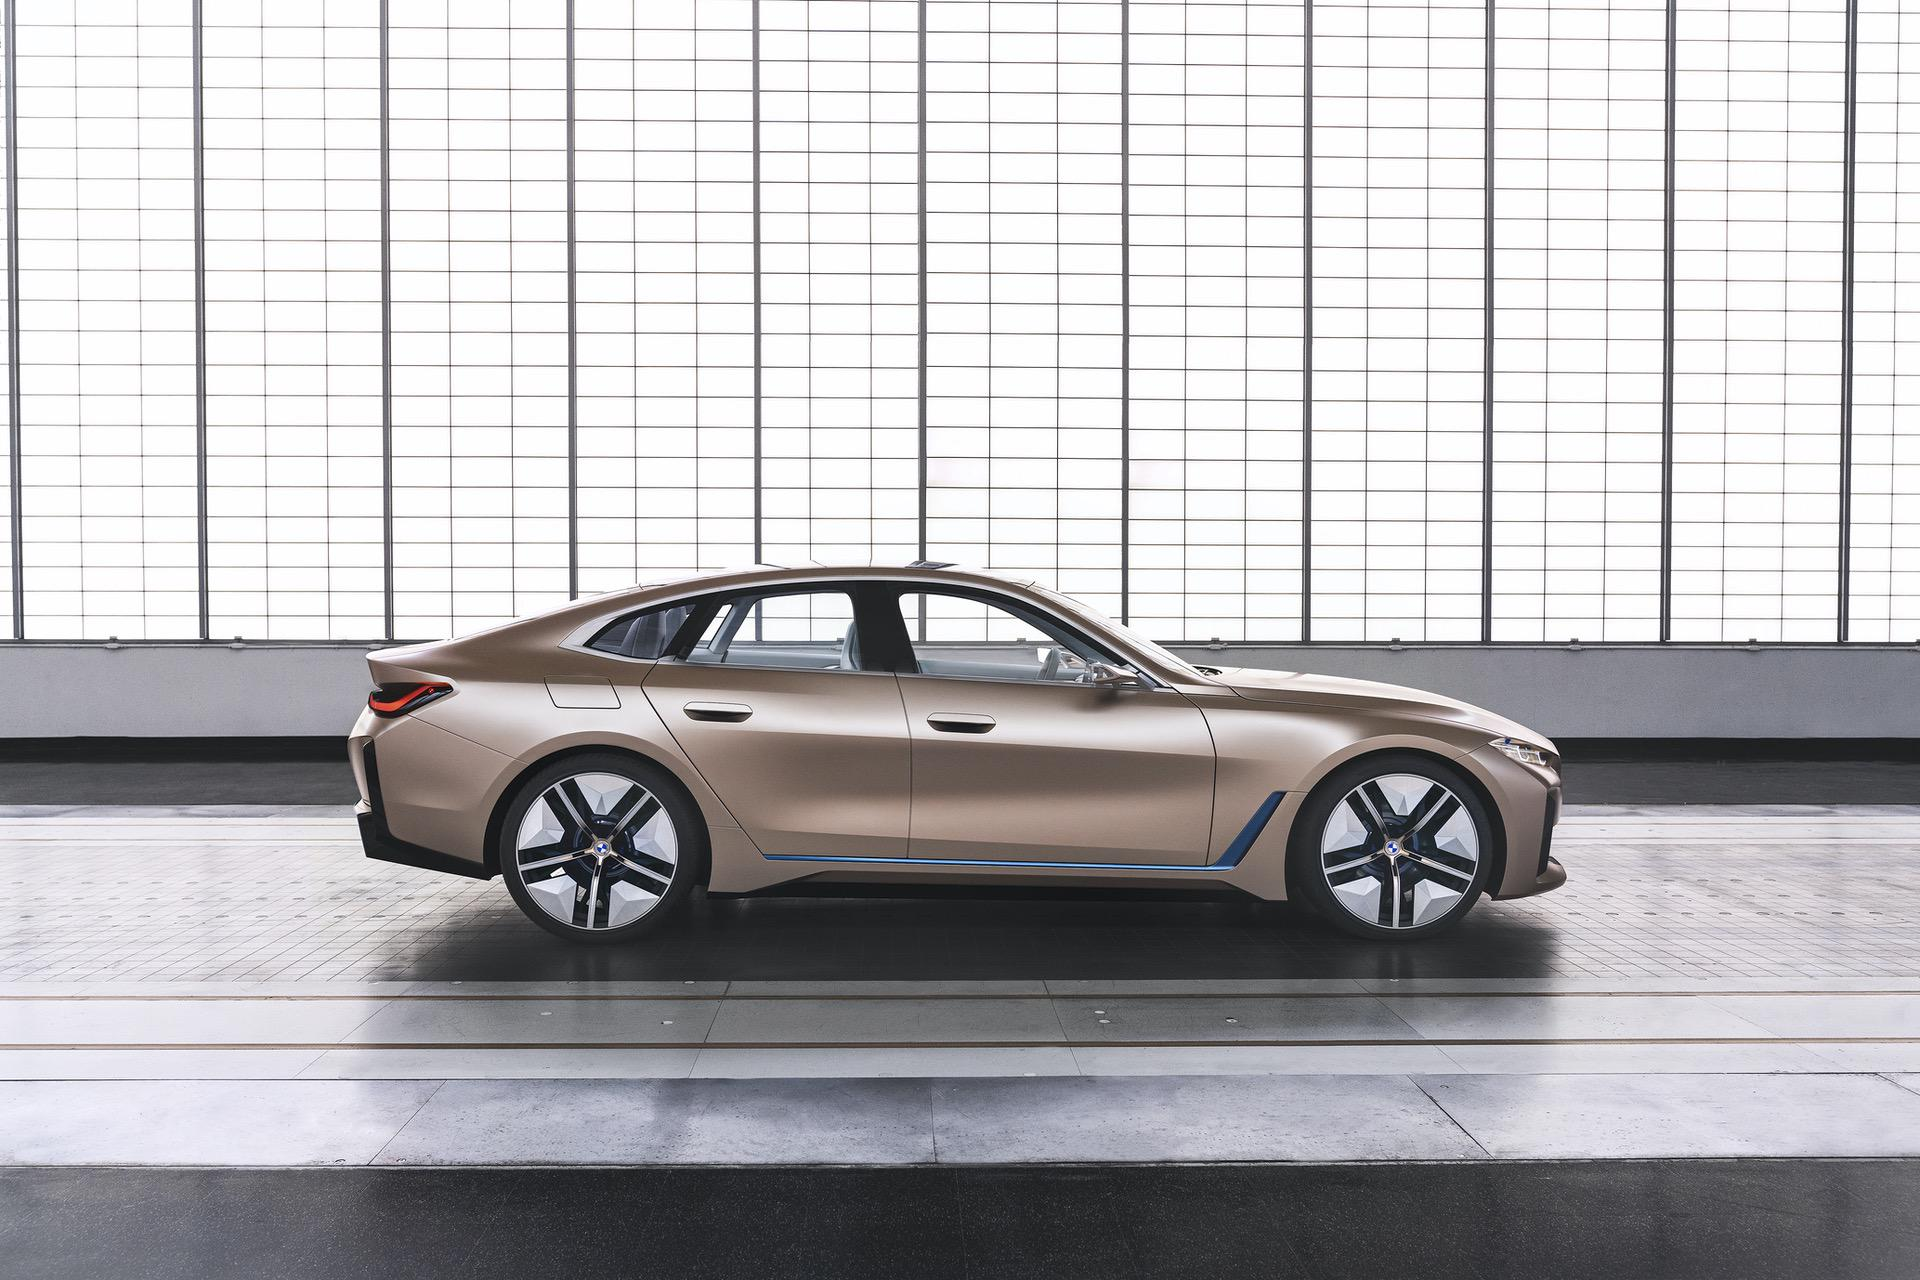 BMW Concept i4 copper color 02